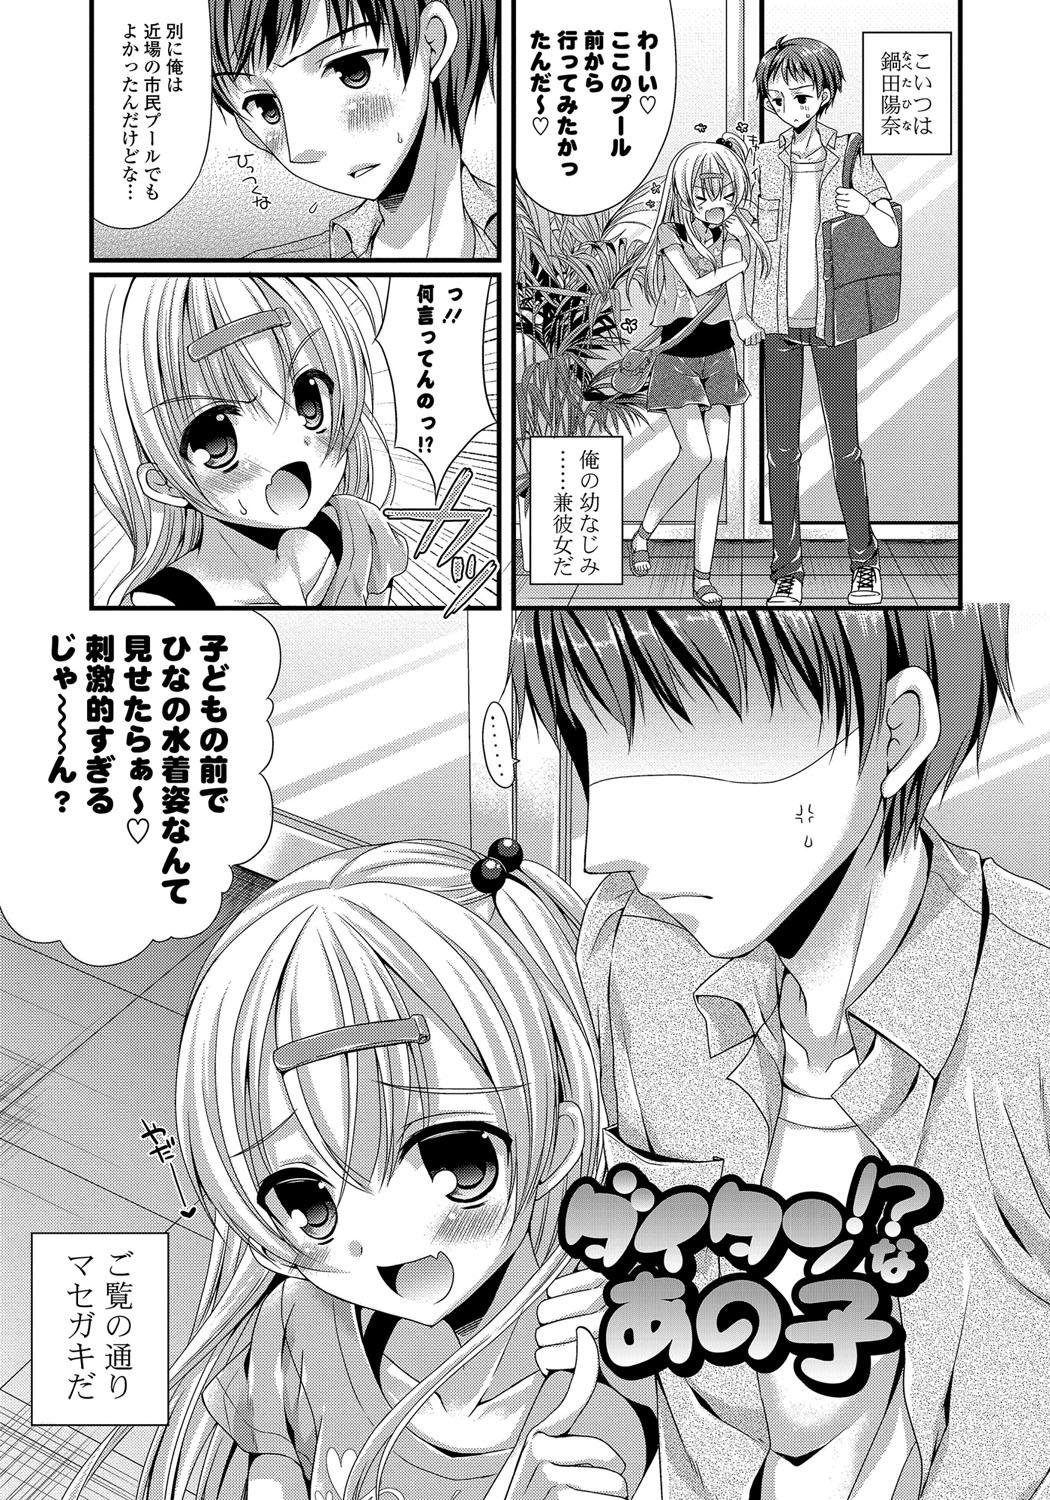 Kanojo to Hajimeteno - For the First Time with Her 123